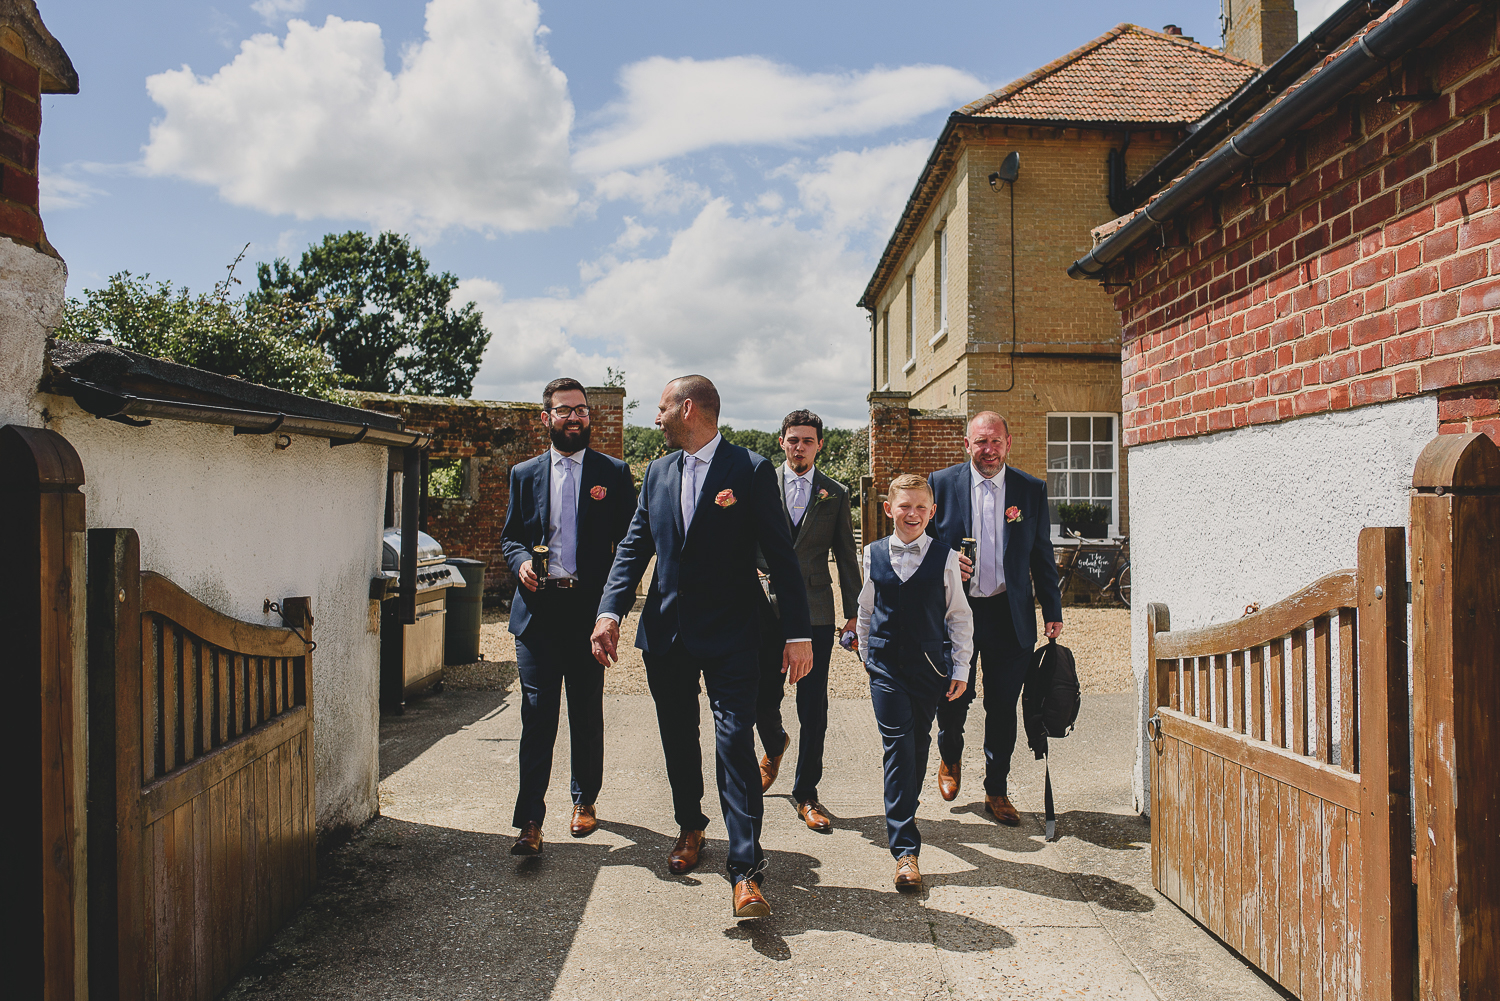 groomsmen walking away to ceremony